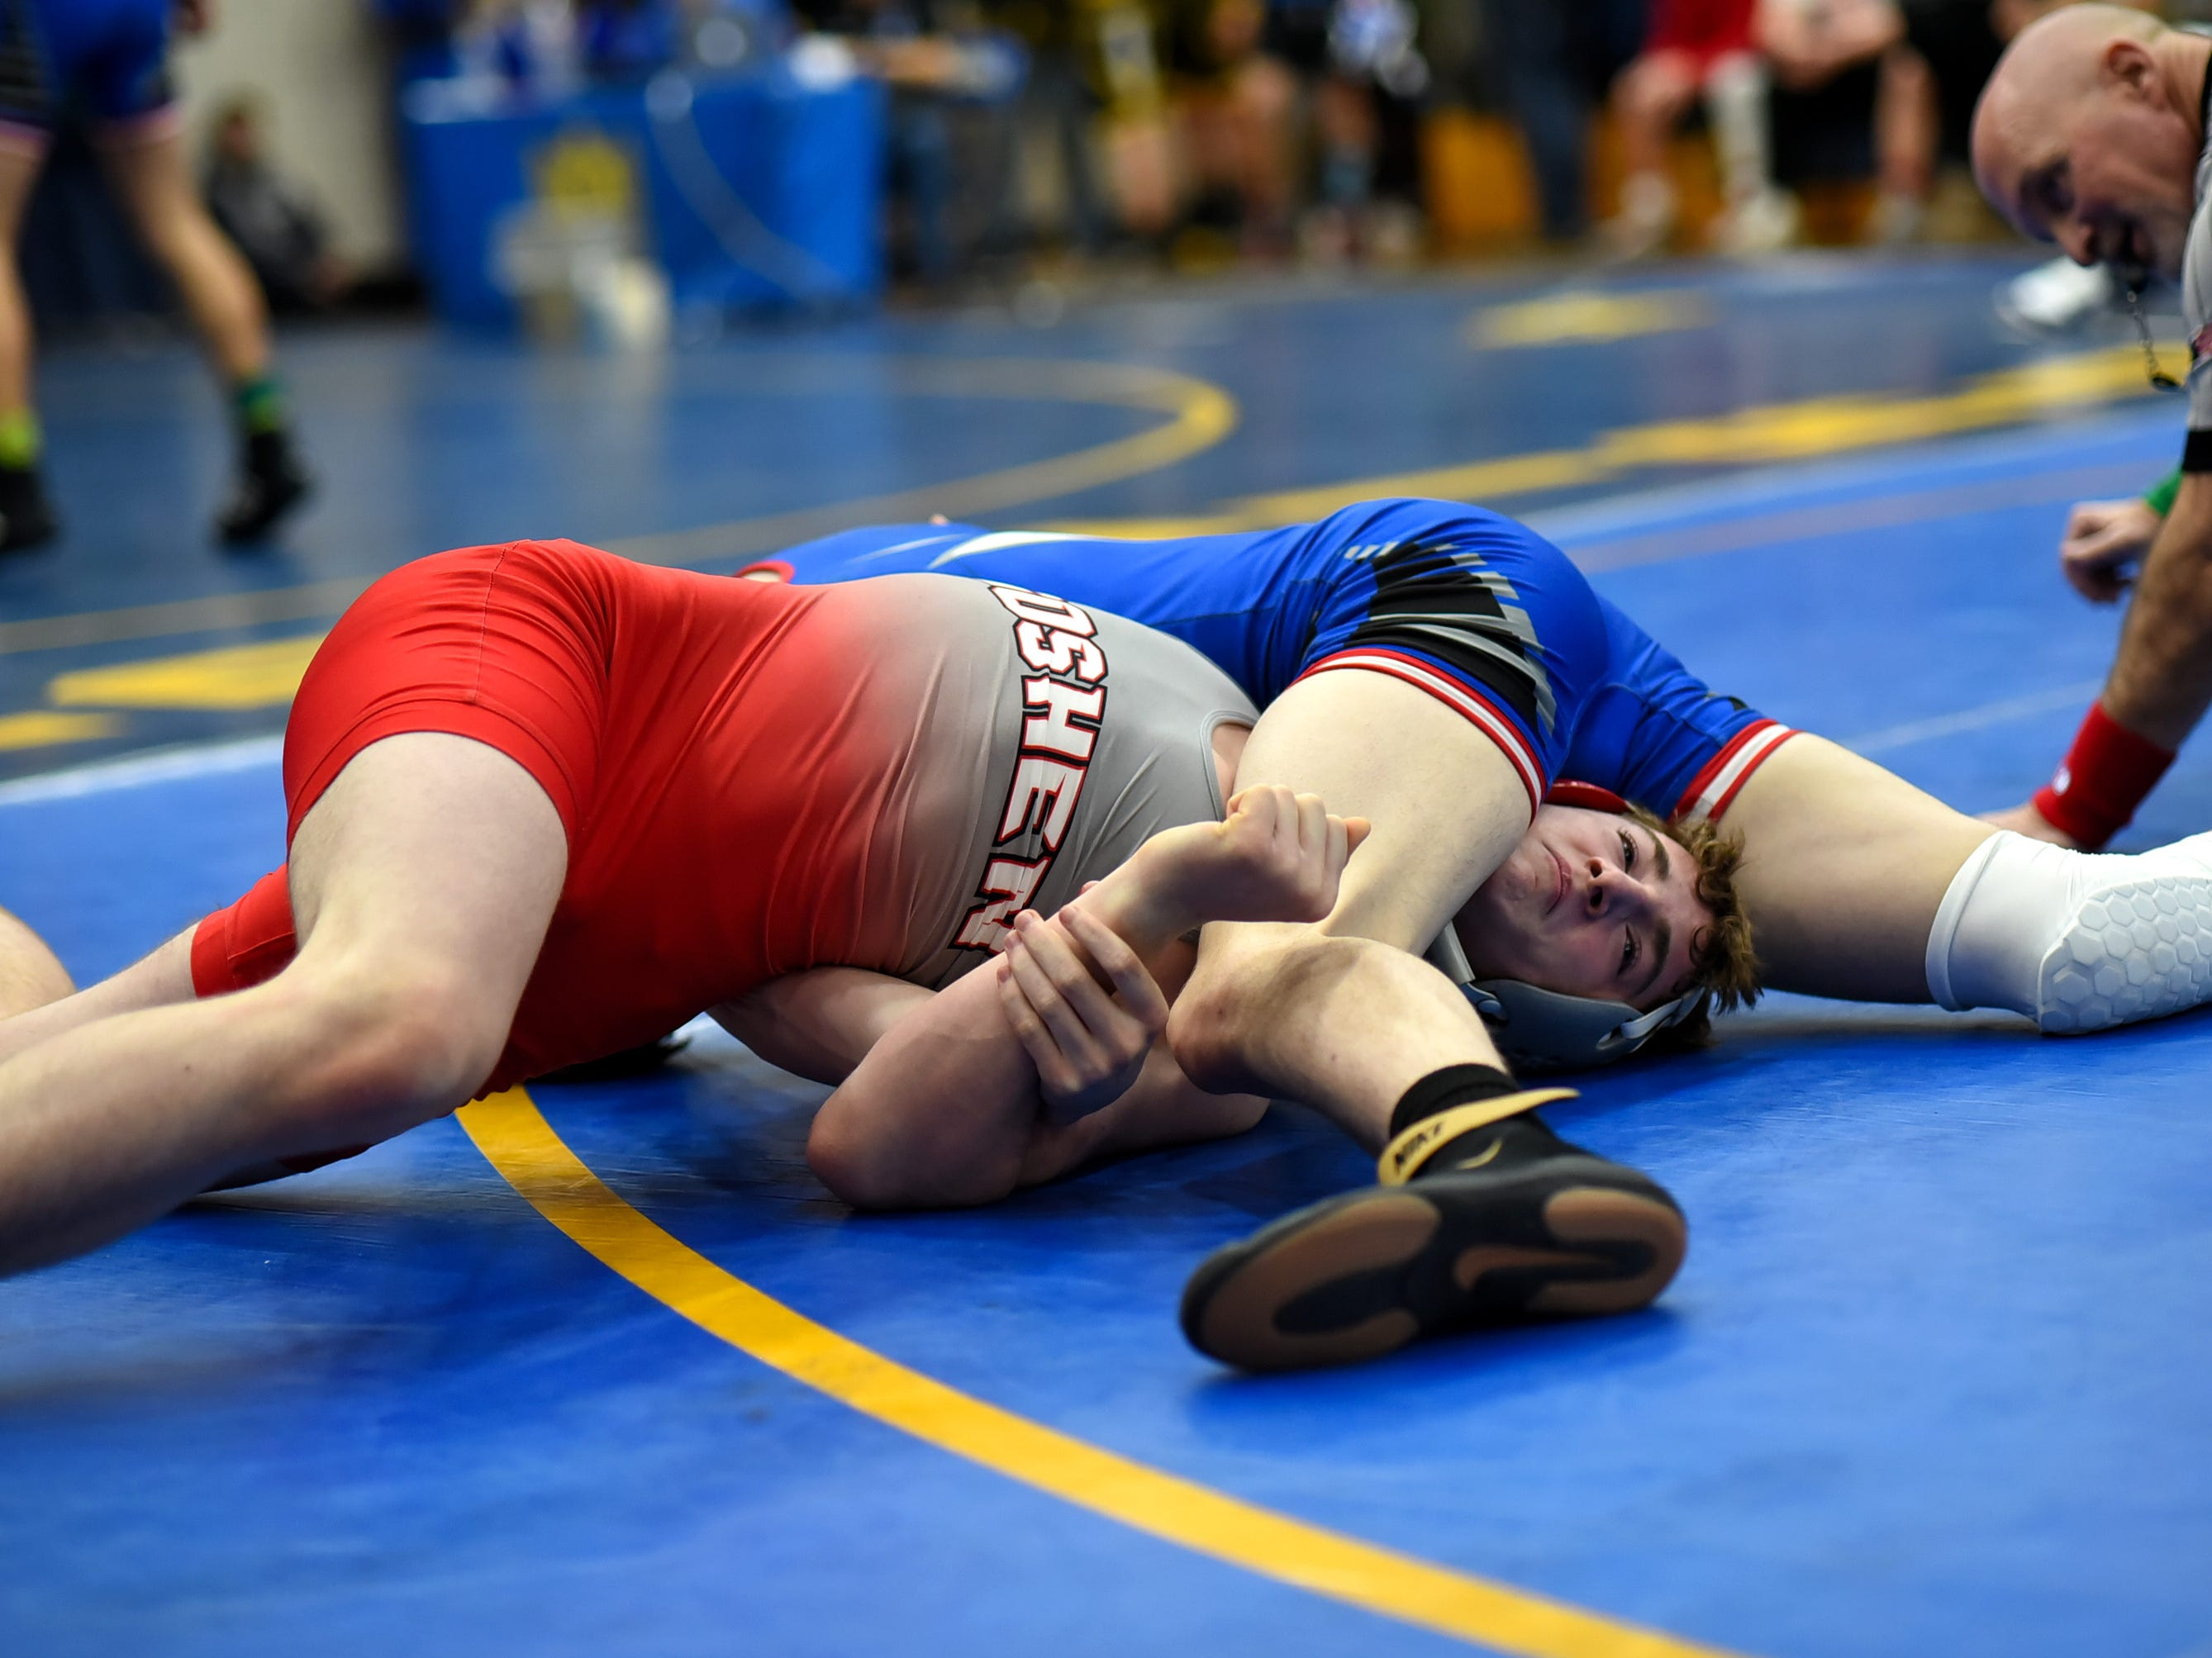 Jon Woodward of Goshen tries to work out of a pinfall jam while wrestling in the 132 lbs. class at the Bob Kearns Madeira Invitational, January 4, 2019.